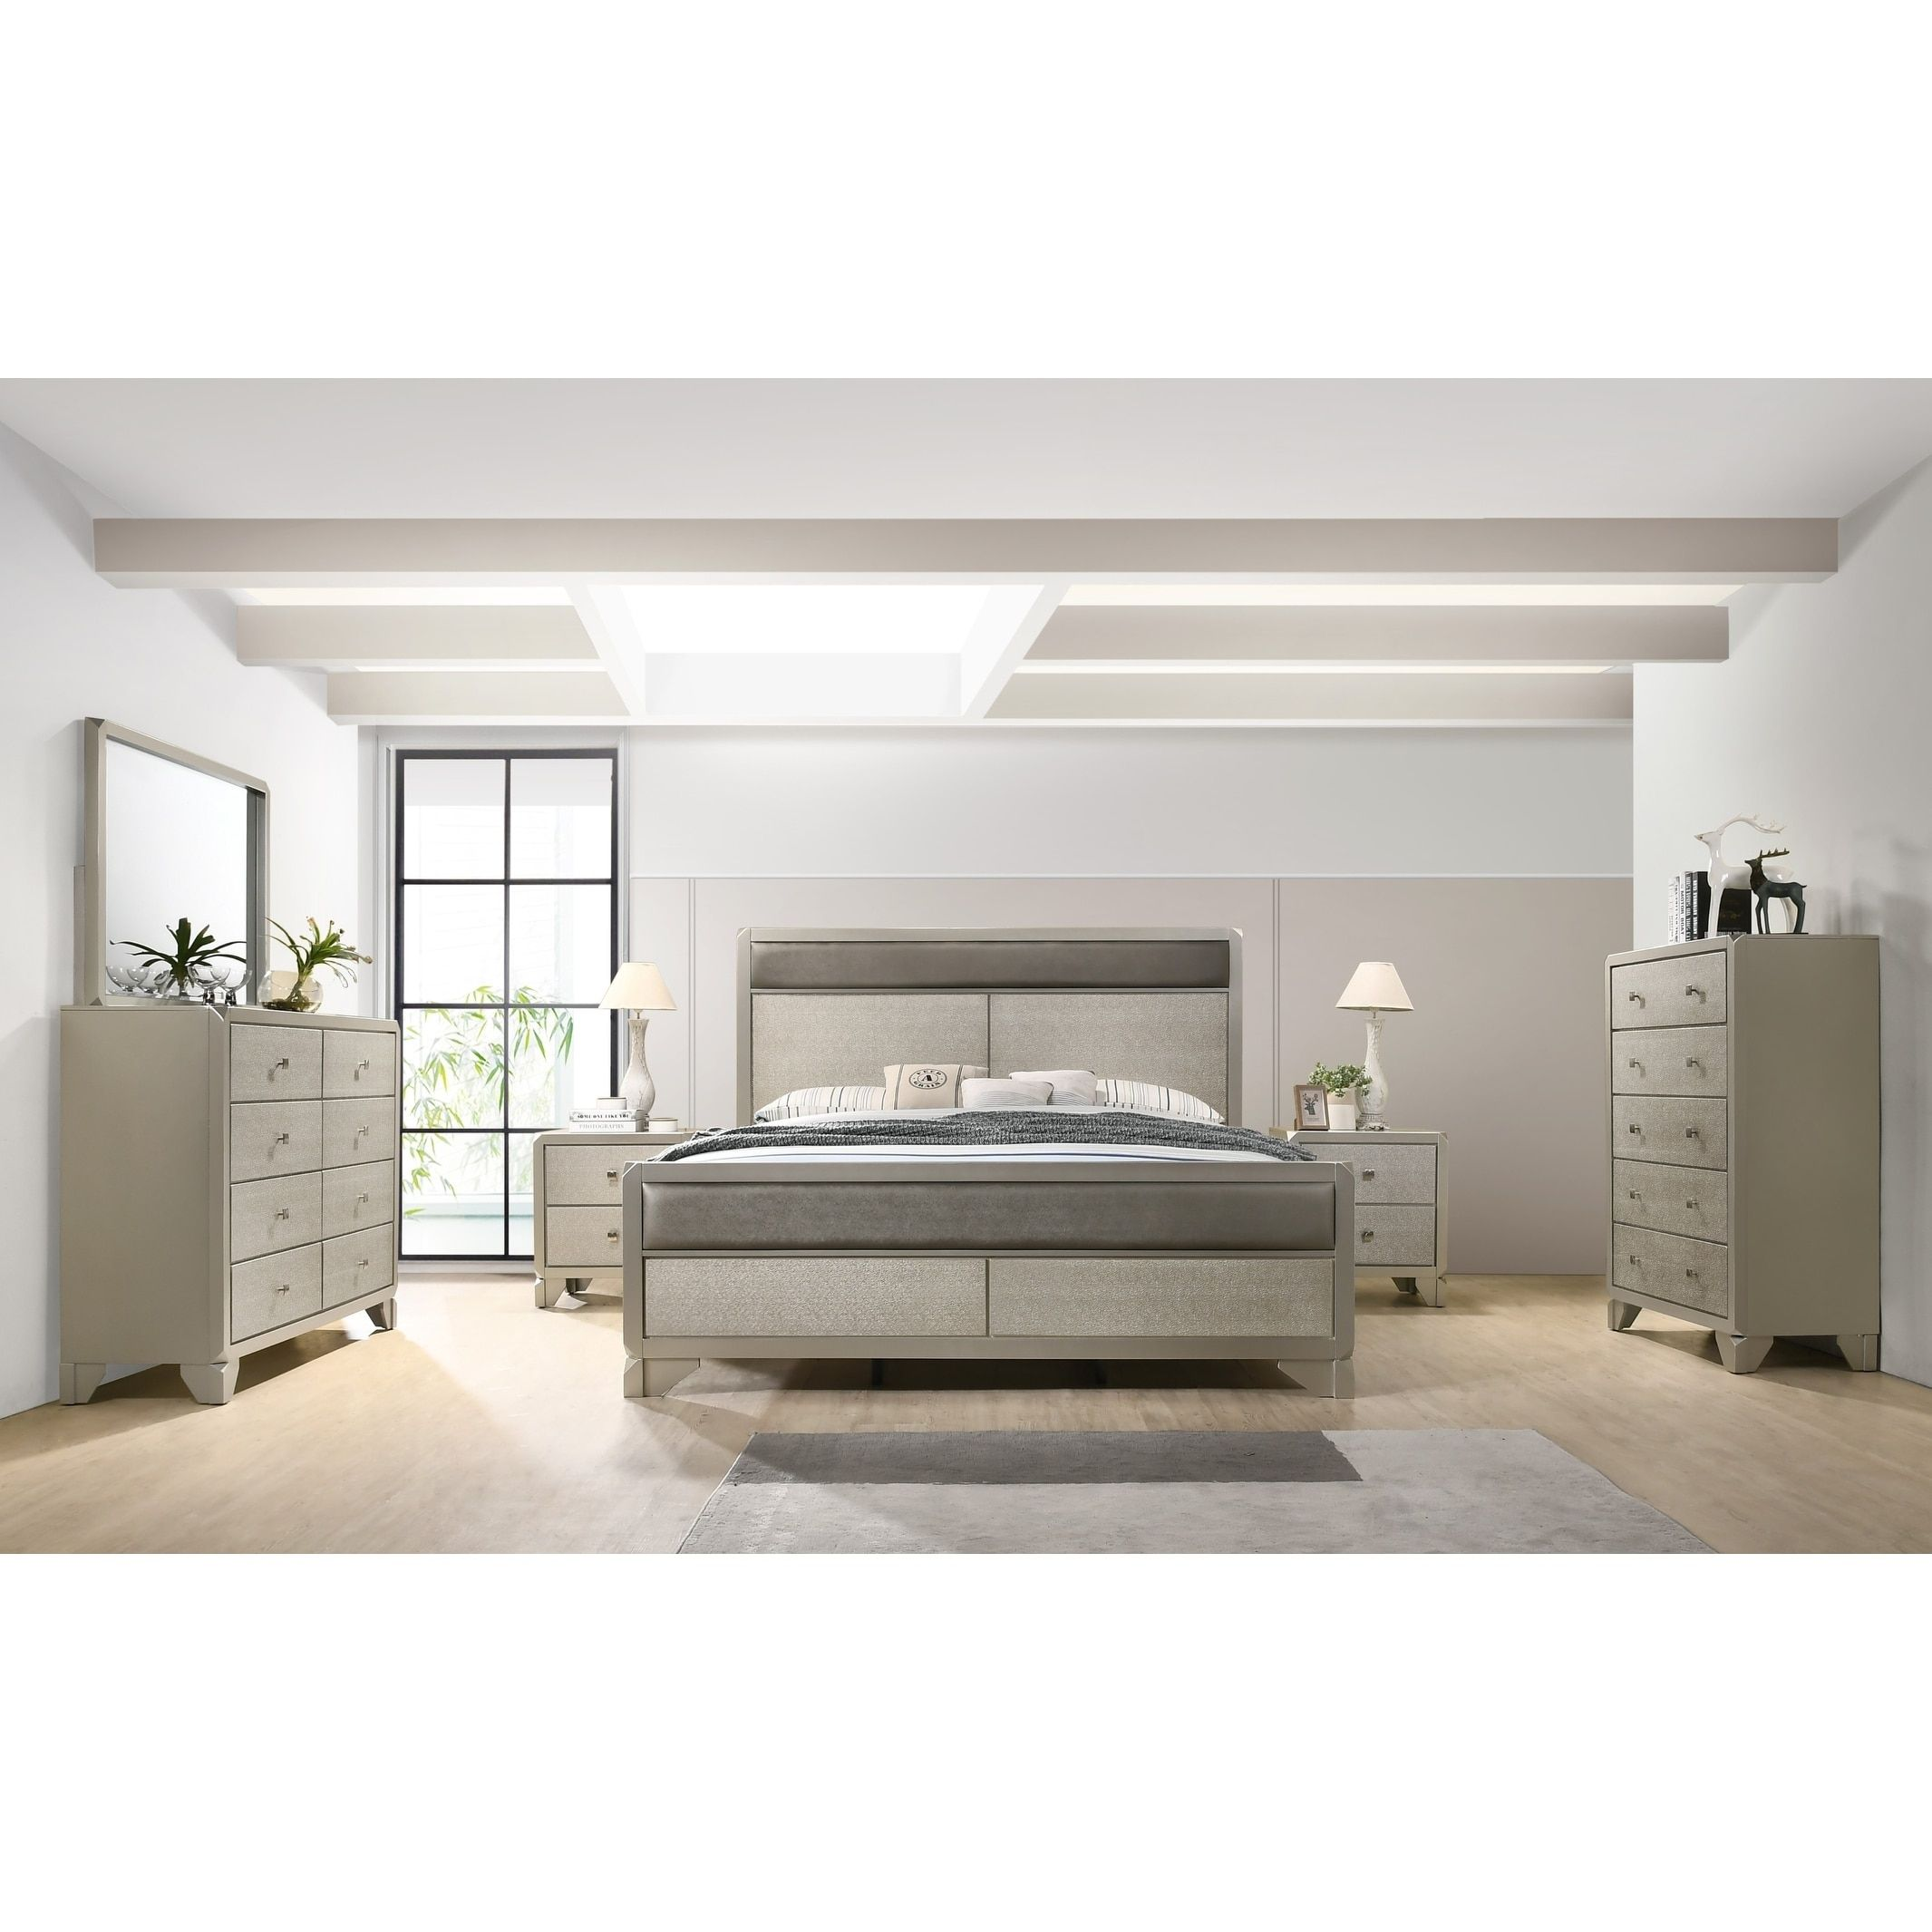 Best Silver Orchid Olivia Contemporary Champagne Beige Silver 400 x 300